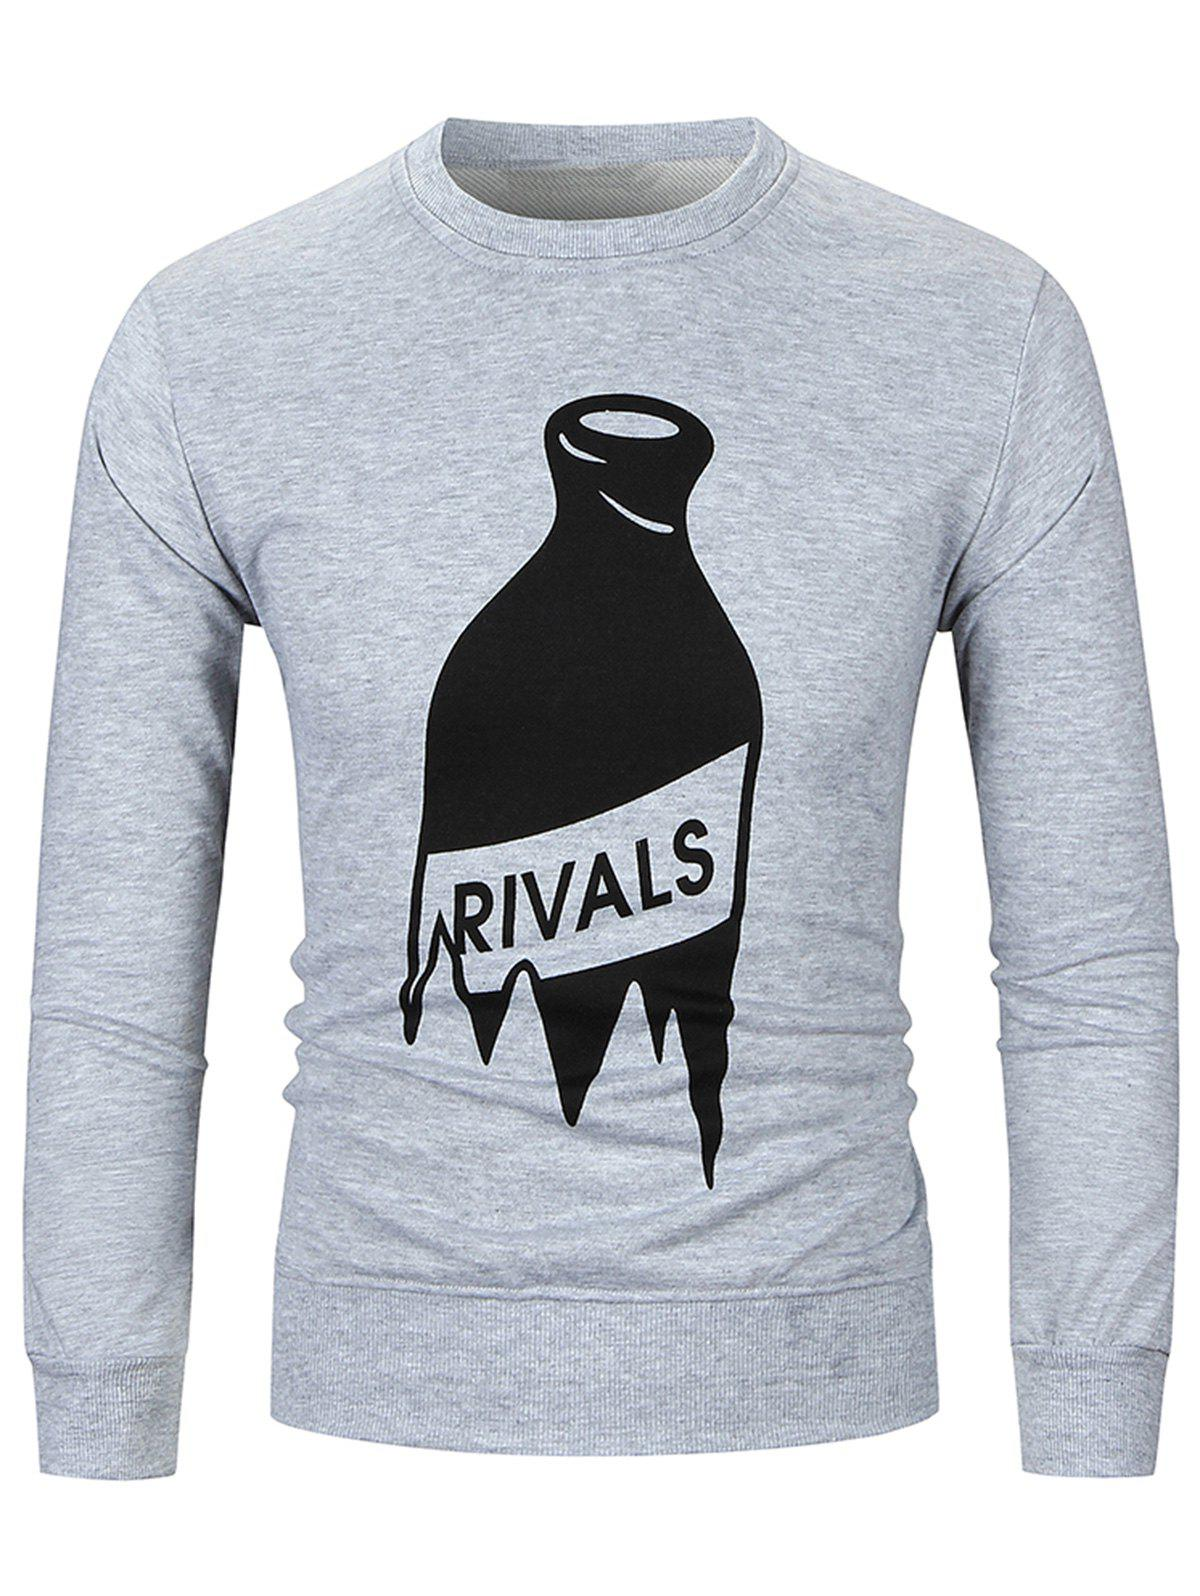 Winebottle Print Crew Neck SweatshirtsMEN<br><br>Size: L; Color: GRAY; Material: Cotton,Polyester; Shirt Length: Regular; Sleeve Length: Full; Style: Fashion; Weight: 0.5300kg; Package Contents: 1 x Sweatshirt;